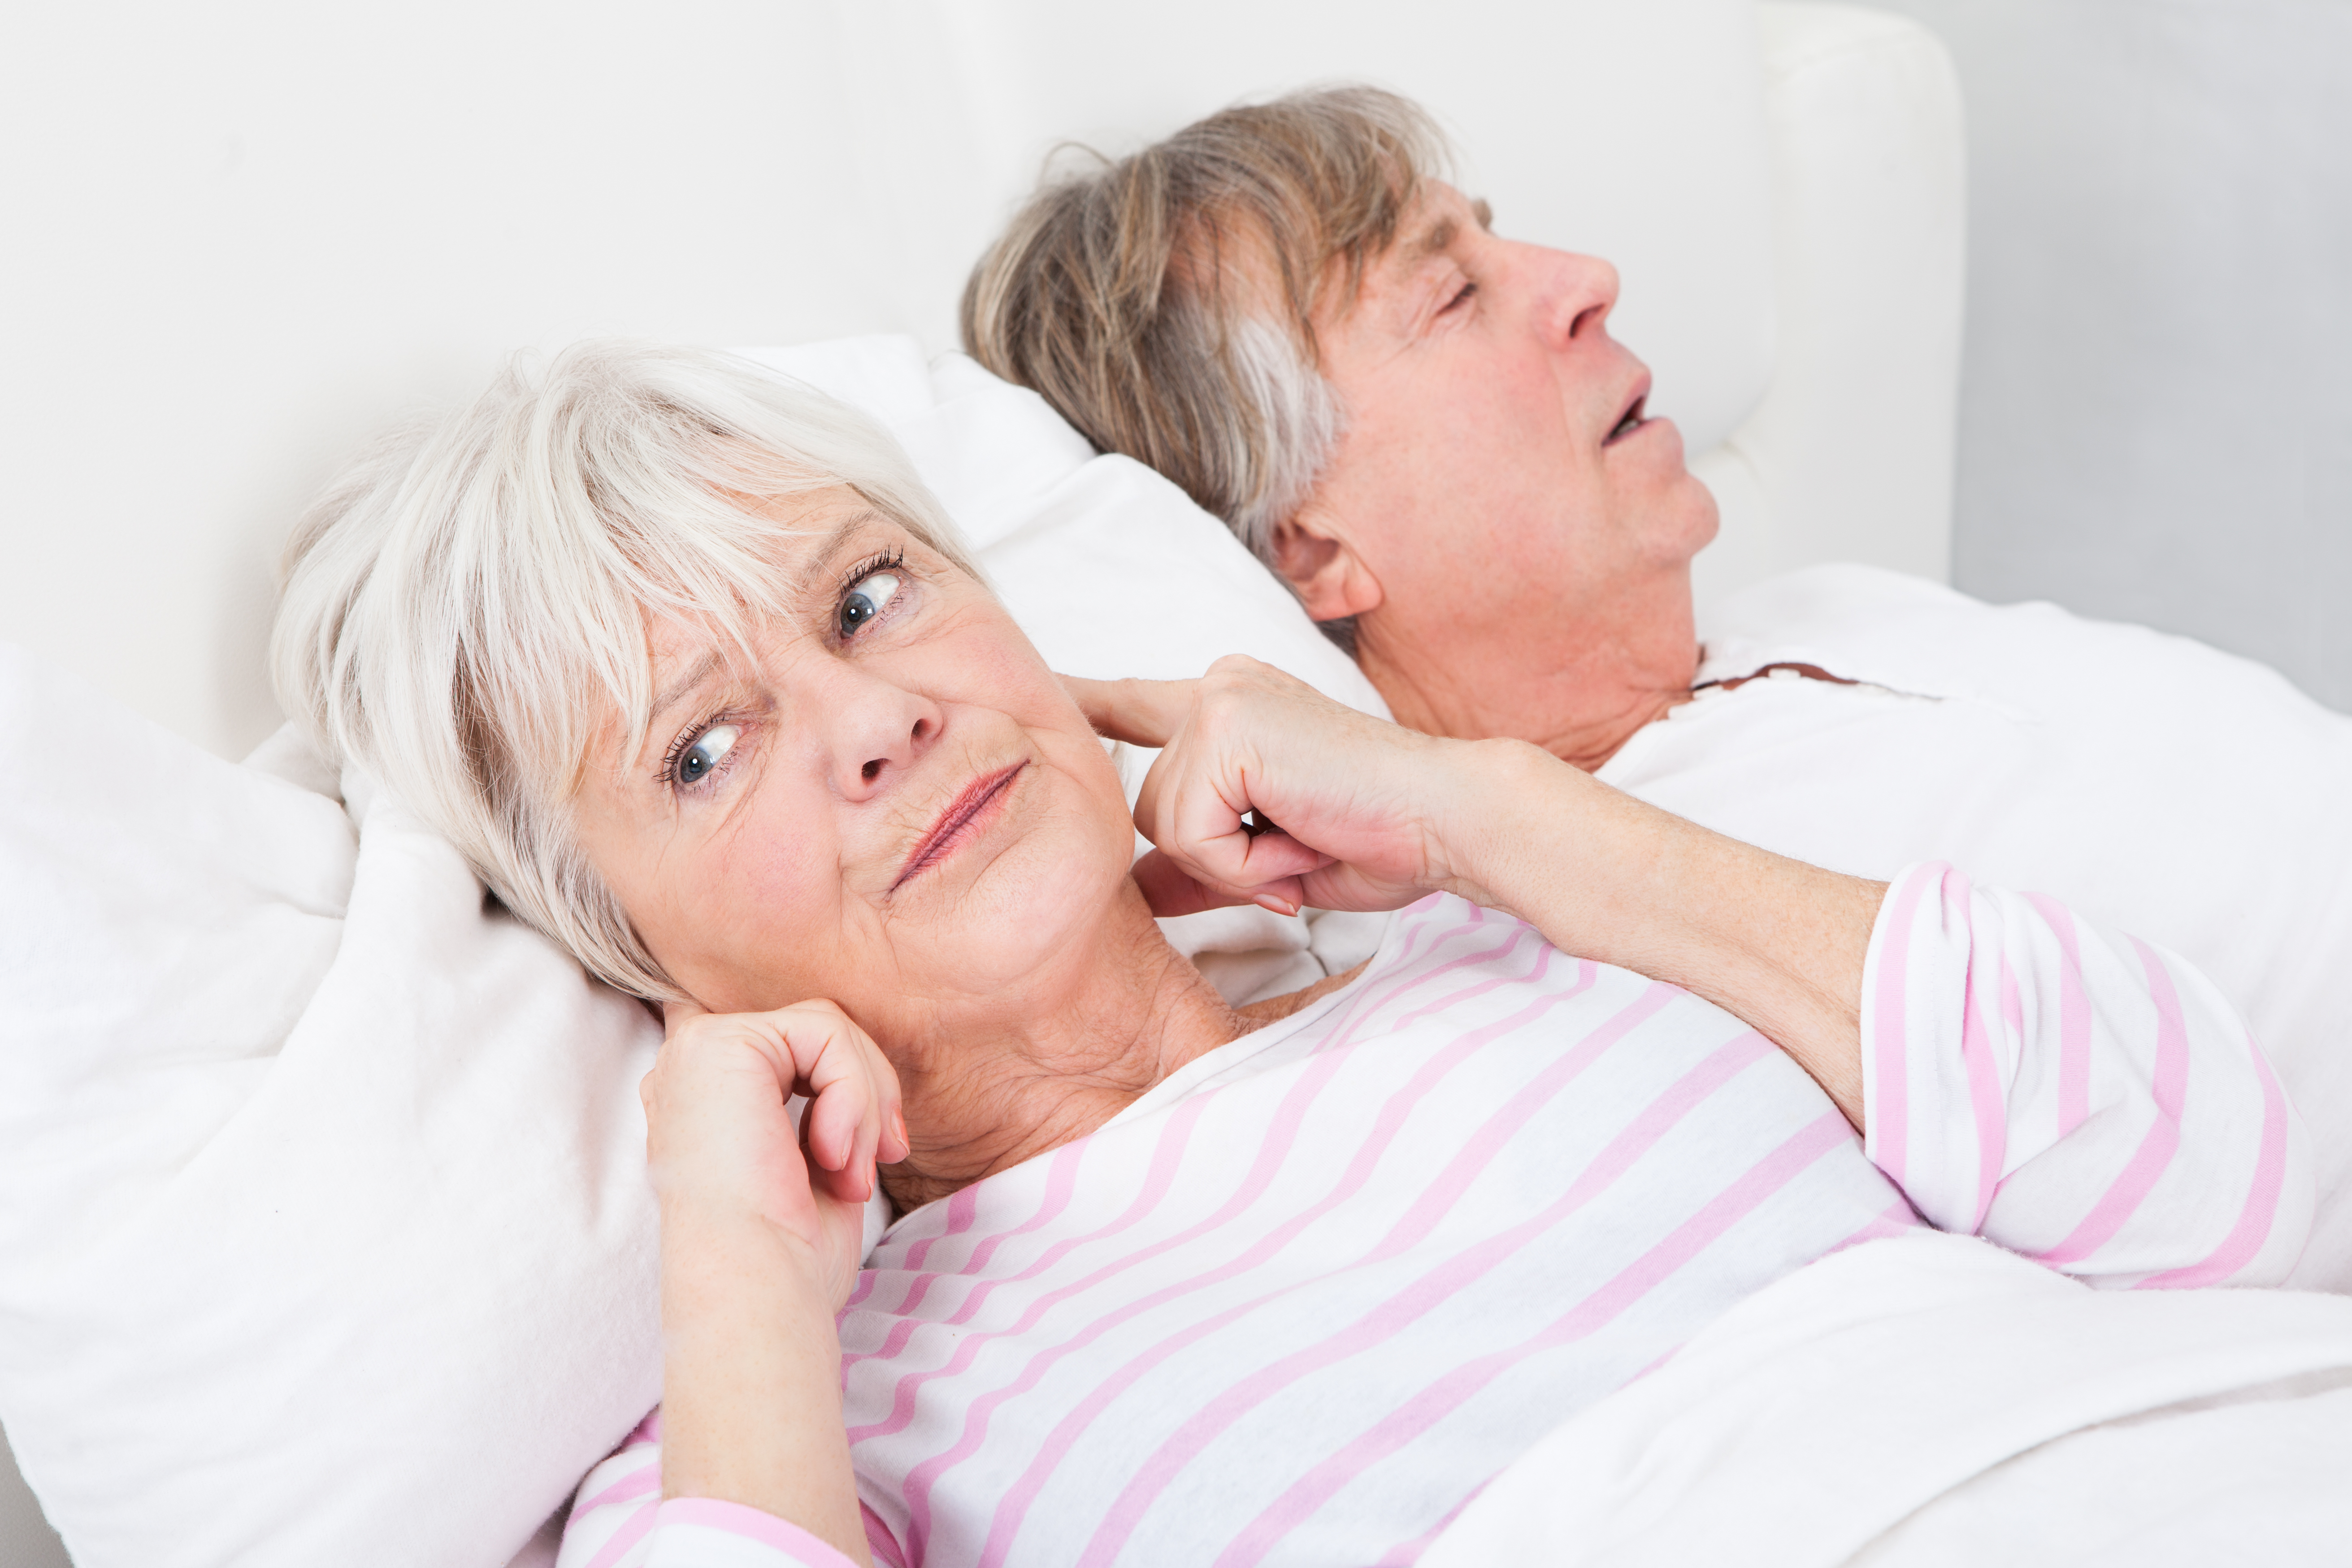 man snoring and woman covering her ears trying to sleep